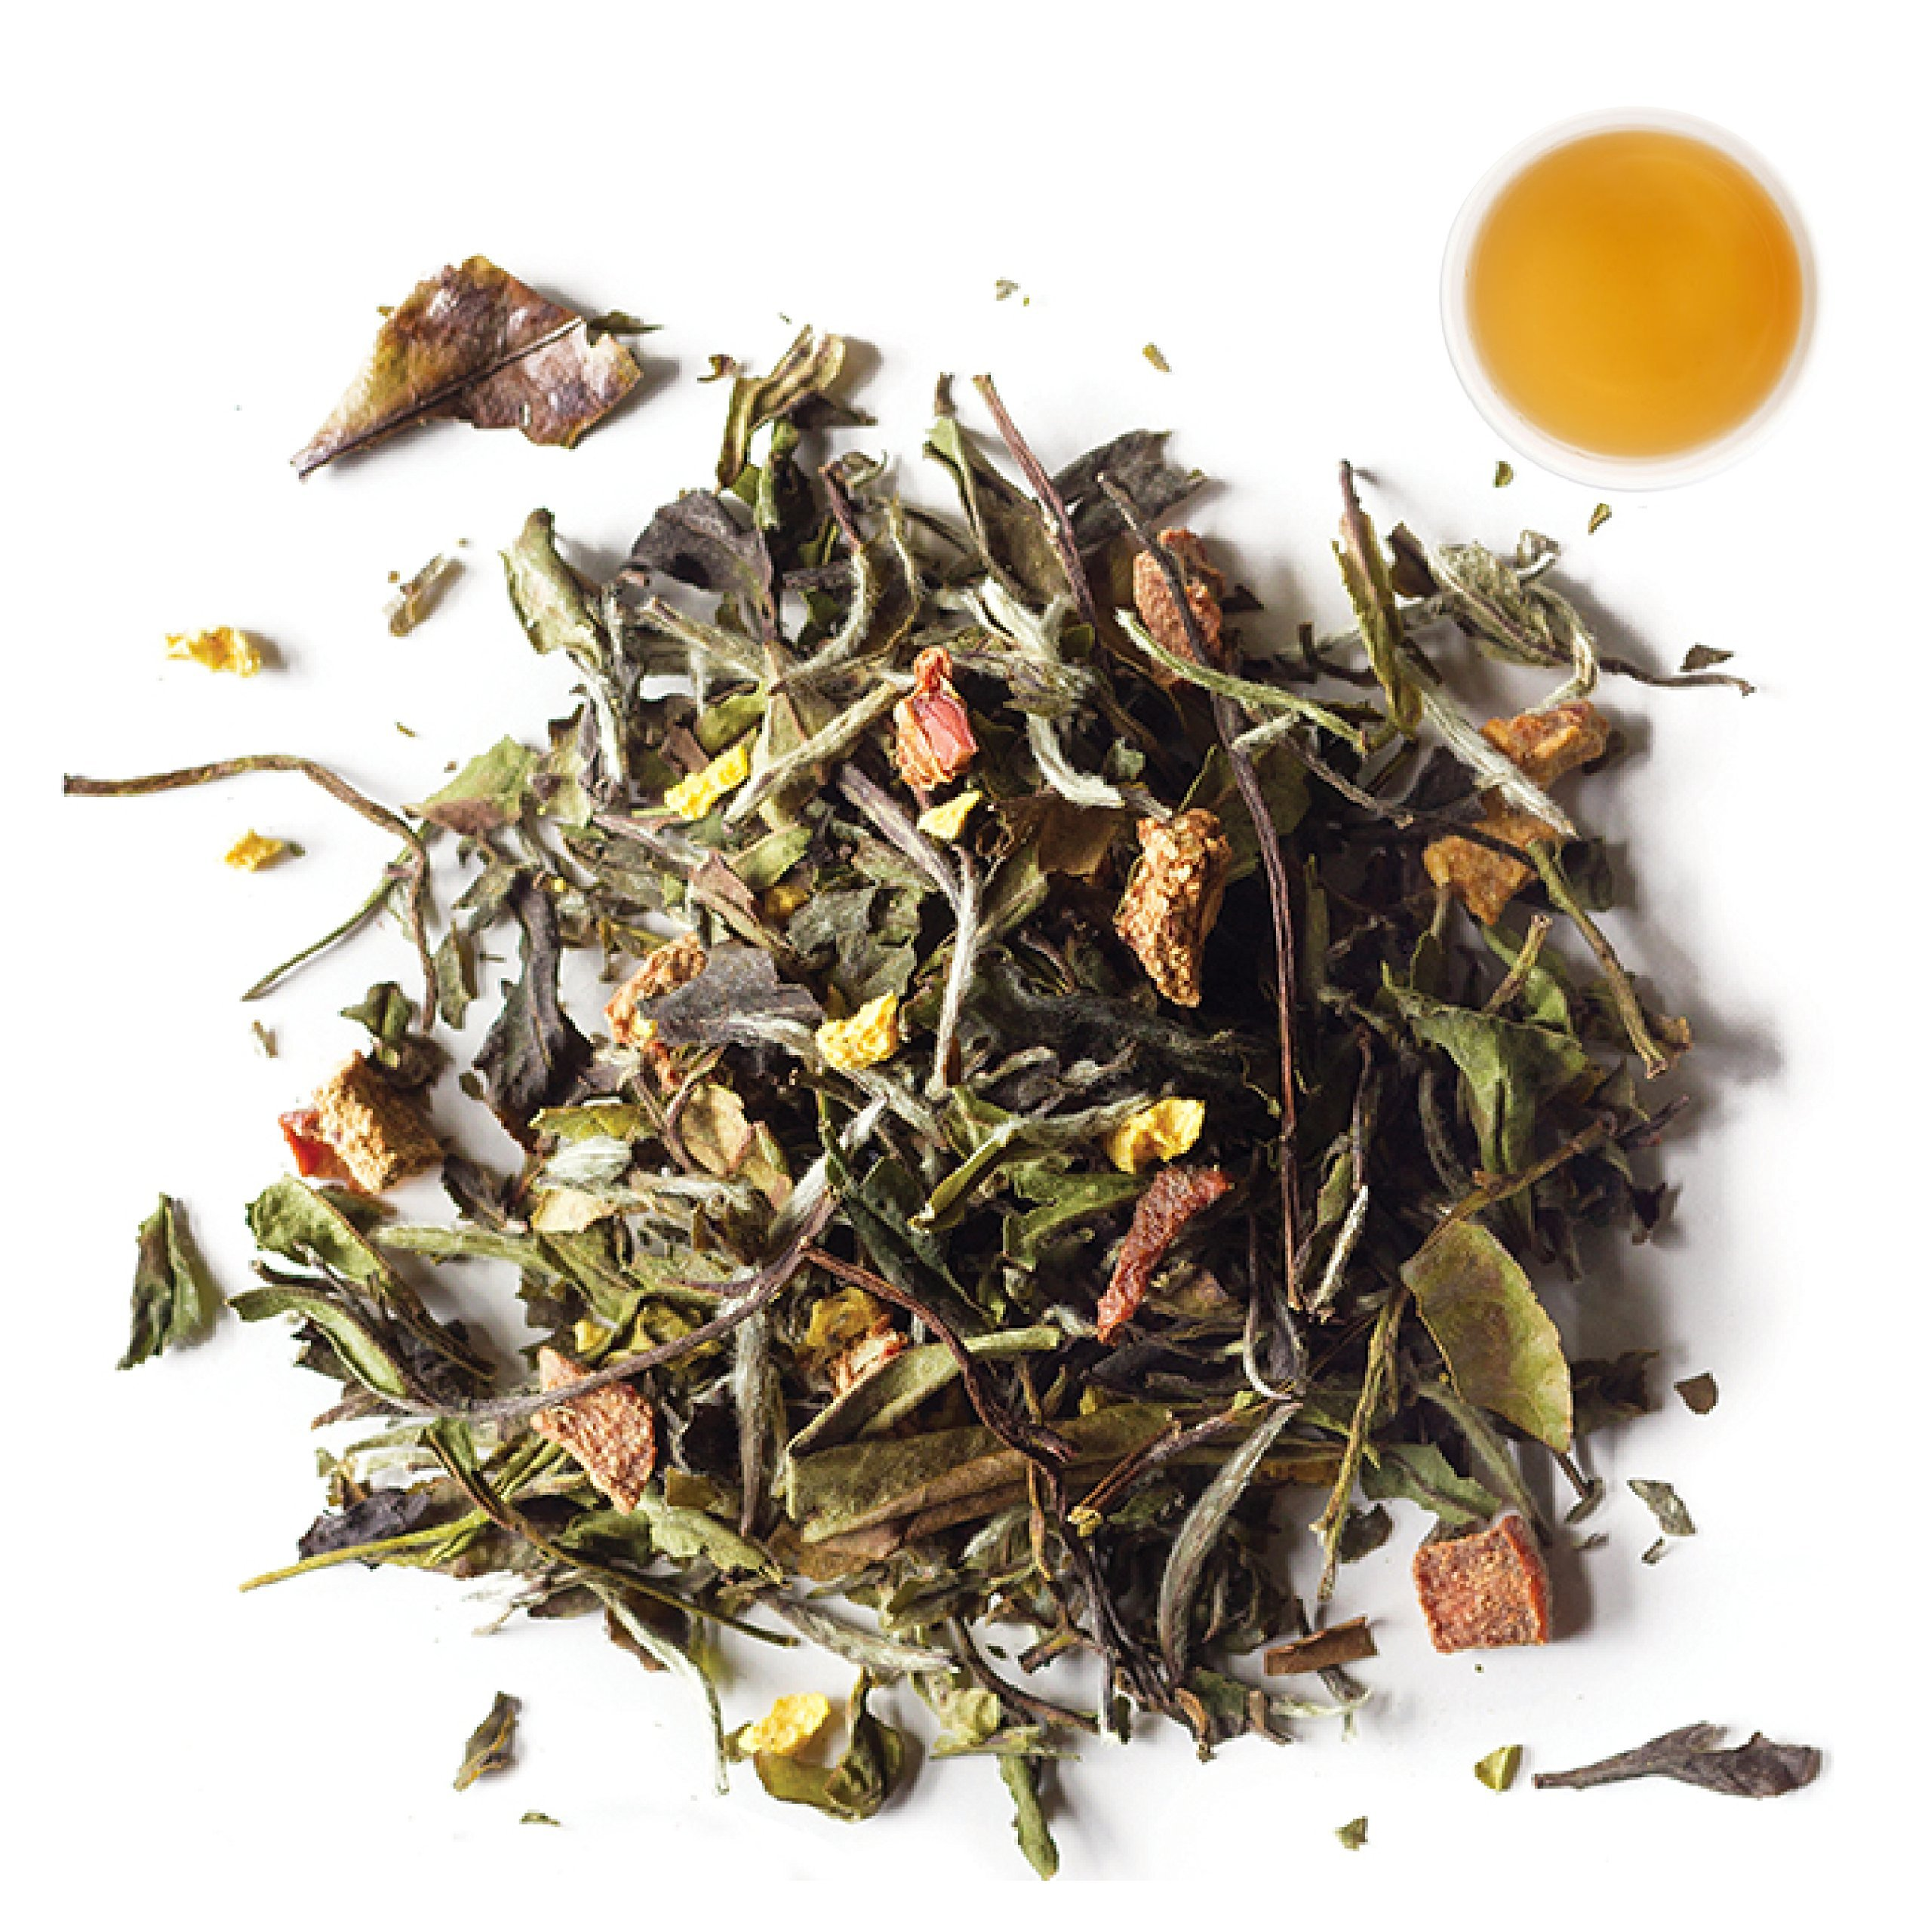 Rishi Peach Blossom Tea, Organic Loose Leaf White Tea Blend, 1 lb Bag by Rishi Tea